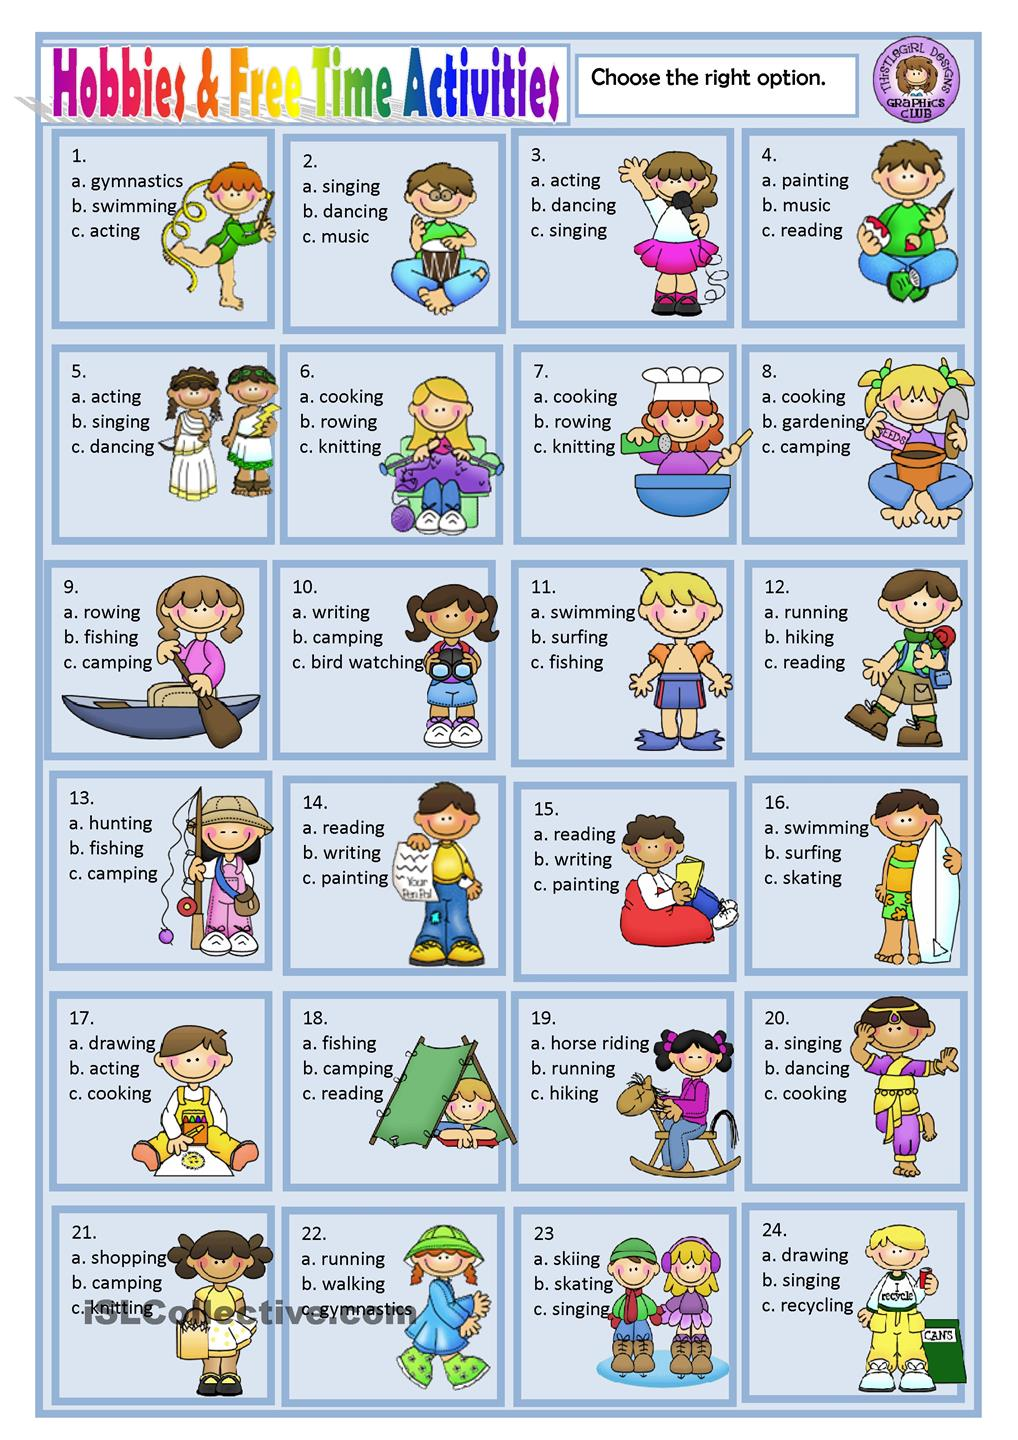 Vacation clipart free time activity FREE HOBBIES ACTIVITIES Pinterest TIME